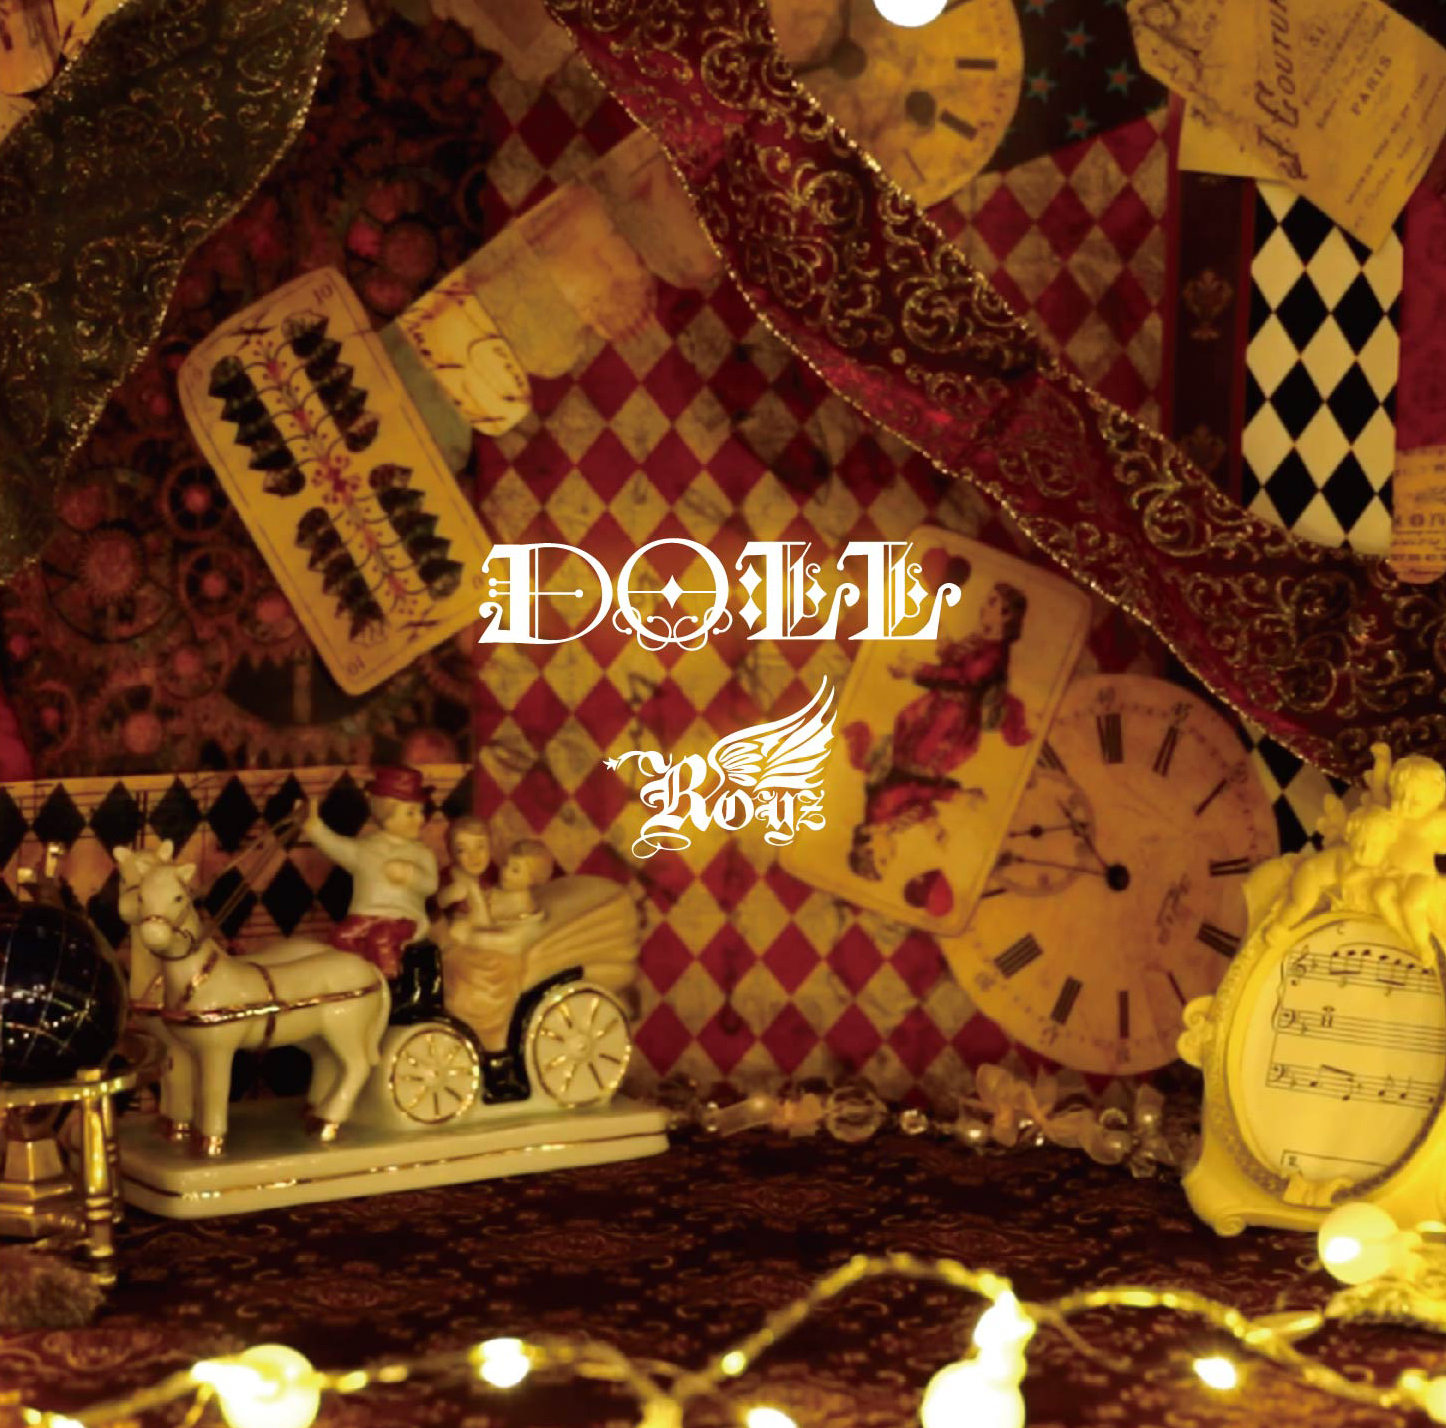 Royz 15th maxi single 「DOLL」Ctype